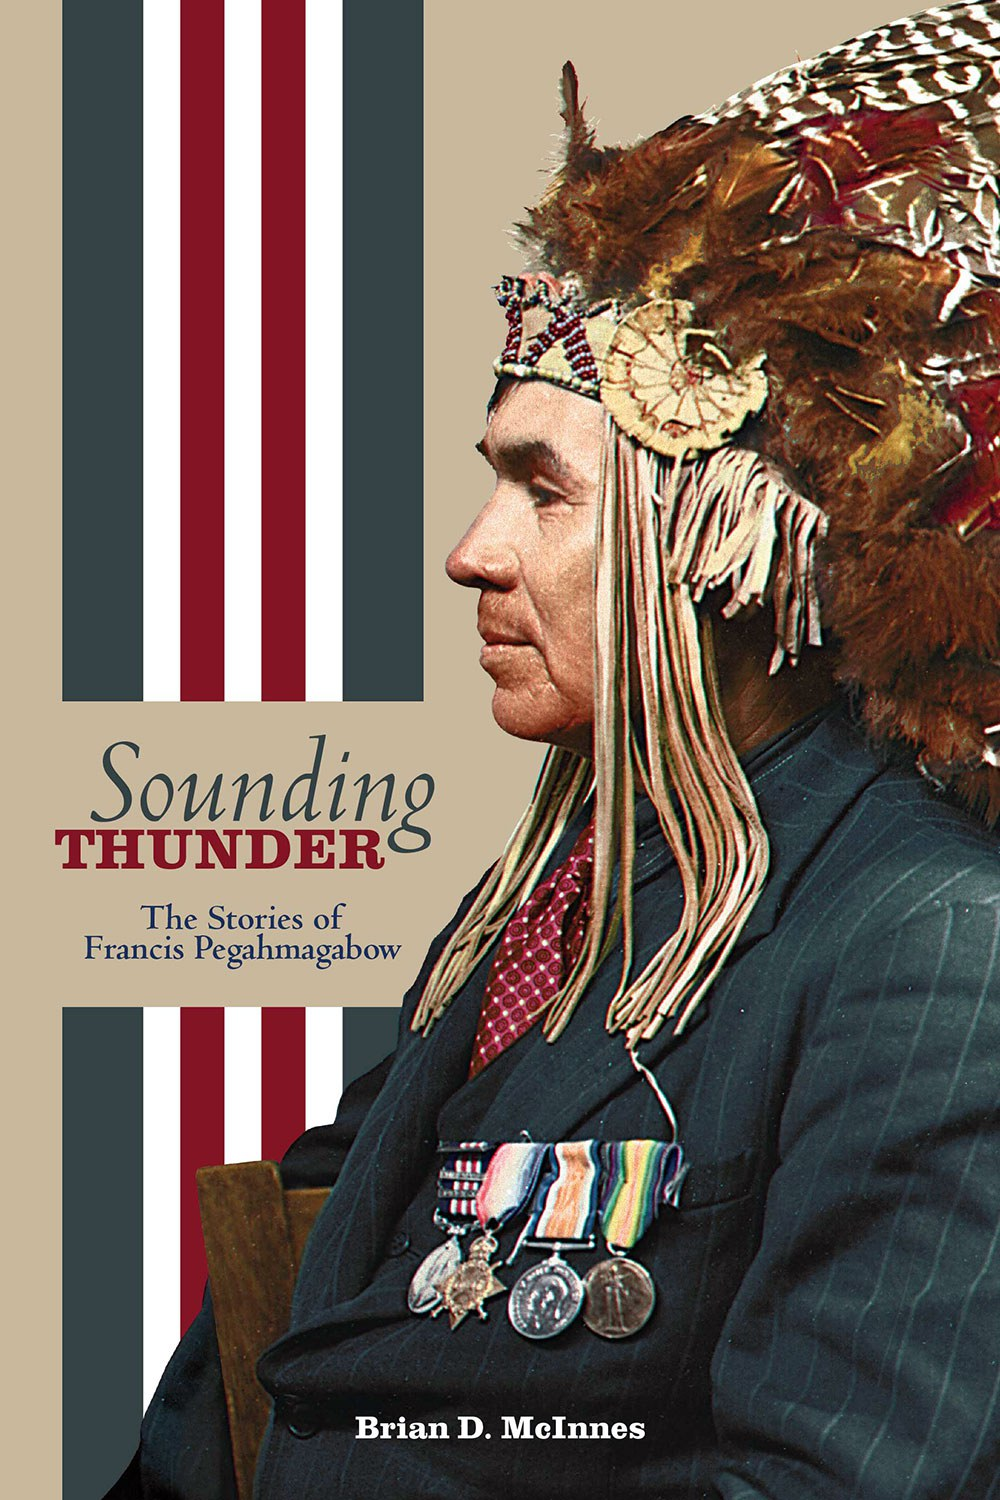 """Front cover of Dr. Brian McInnes' book """"Sounding Thunder: Stories of Francis Pegahmagabow"""""""